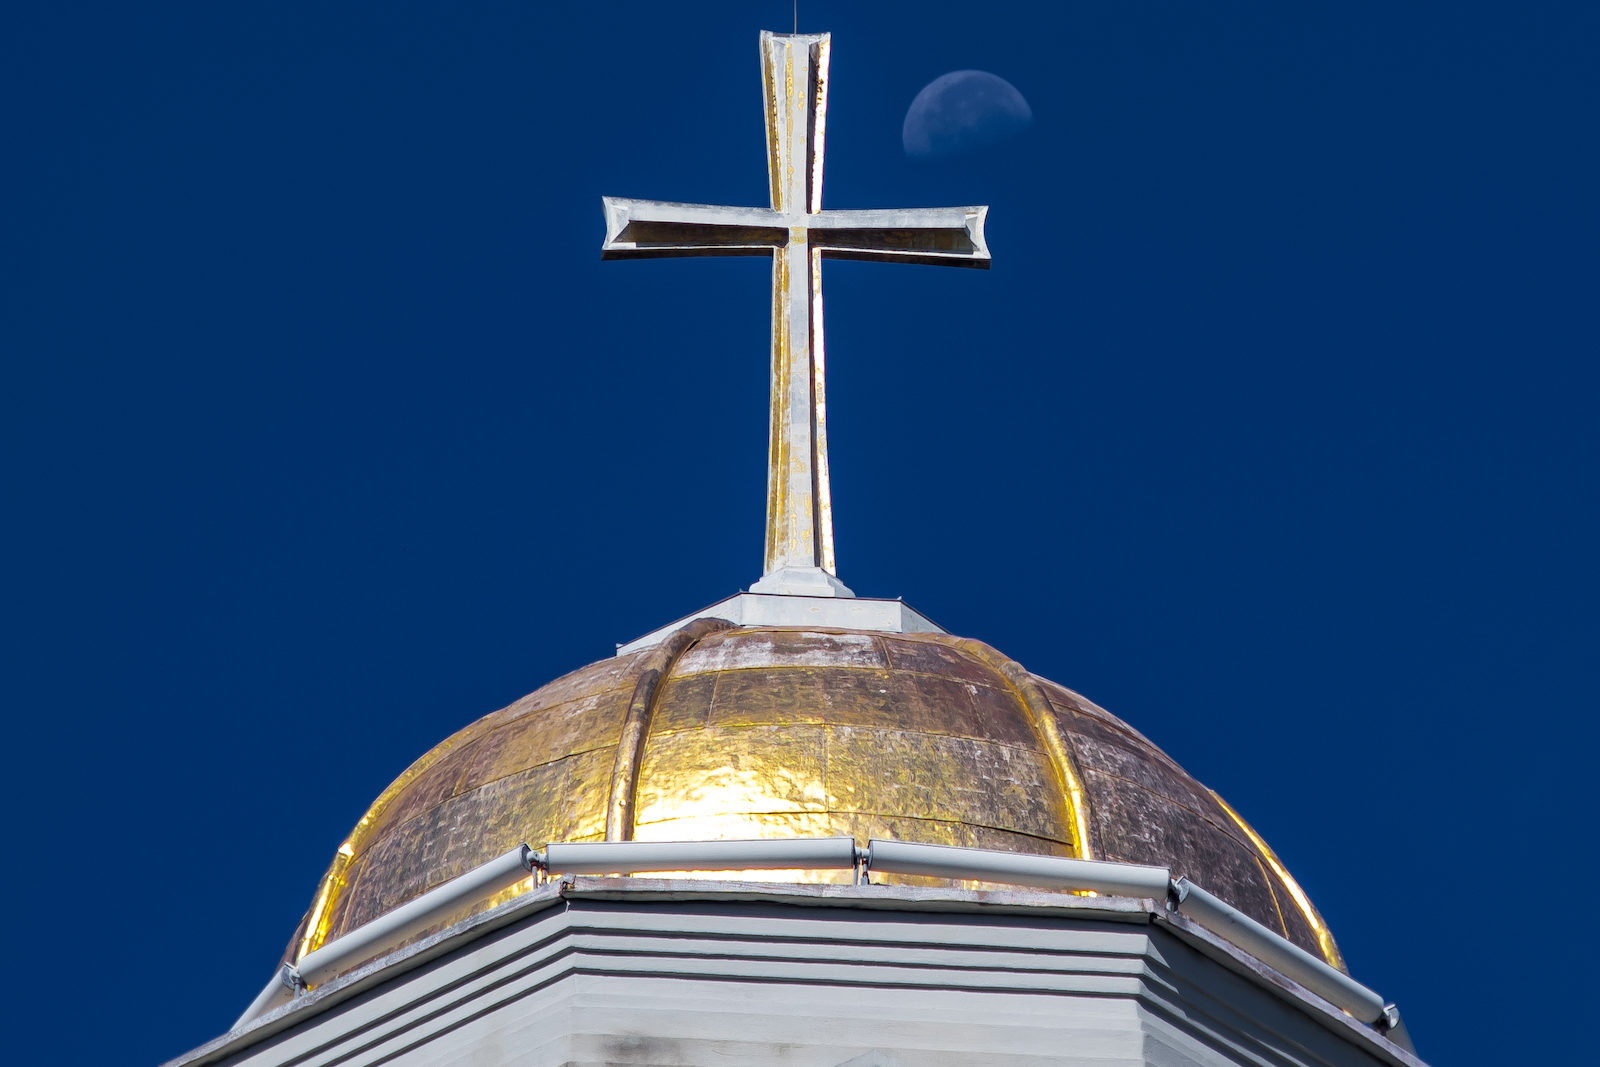 Catherdral of Immaculate Conception Steeple and Moon